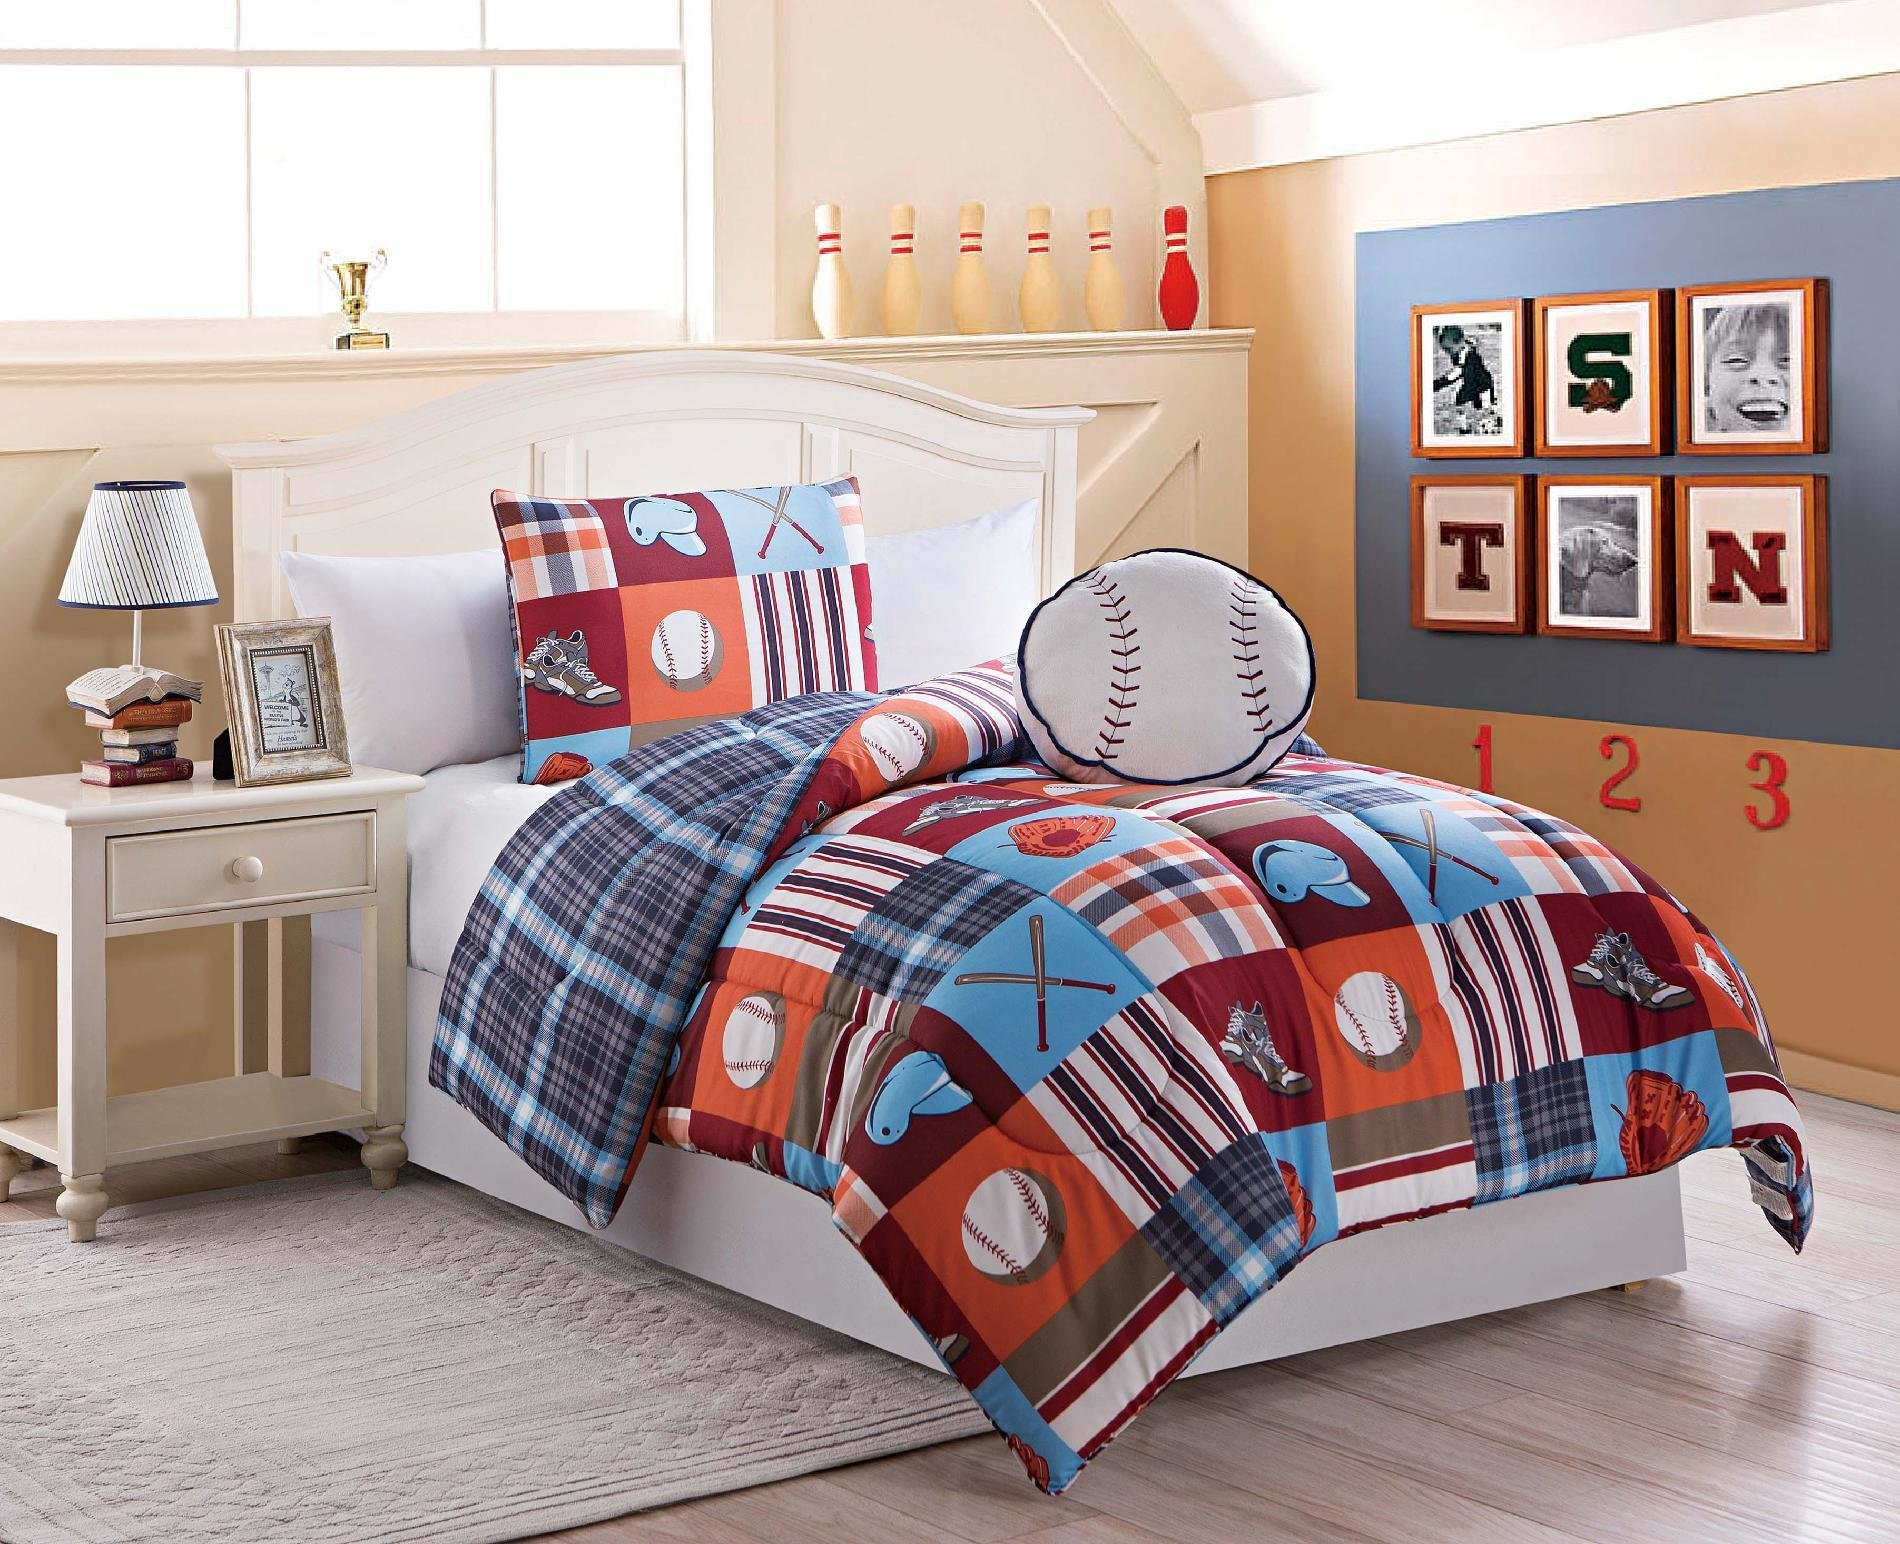 Best Boys Twin Size 3 Pc Reversible Baseball Comforter Set With Sham Pillow 416 With Pictures